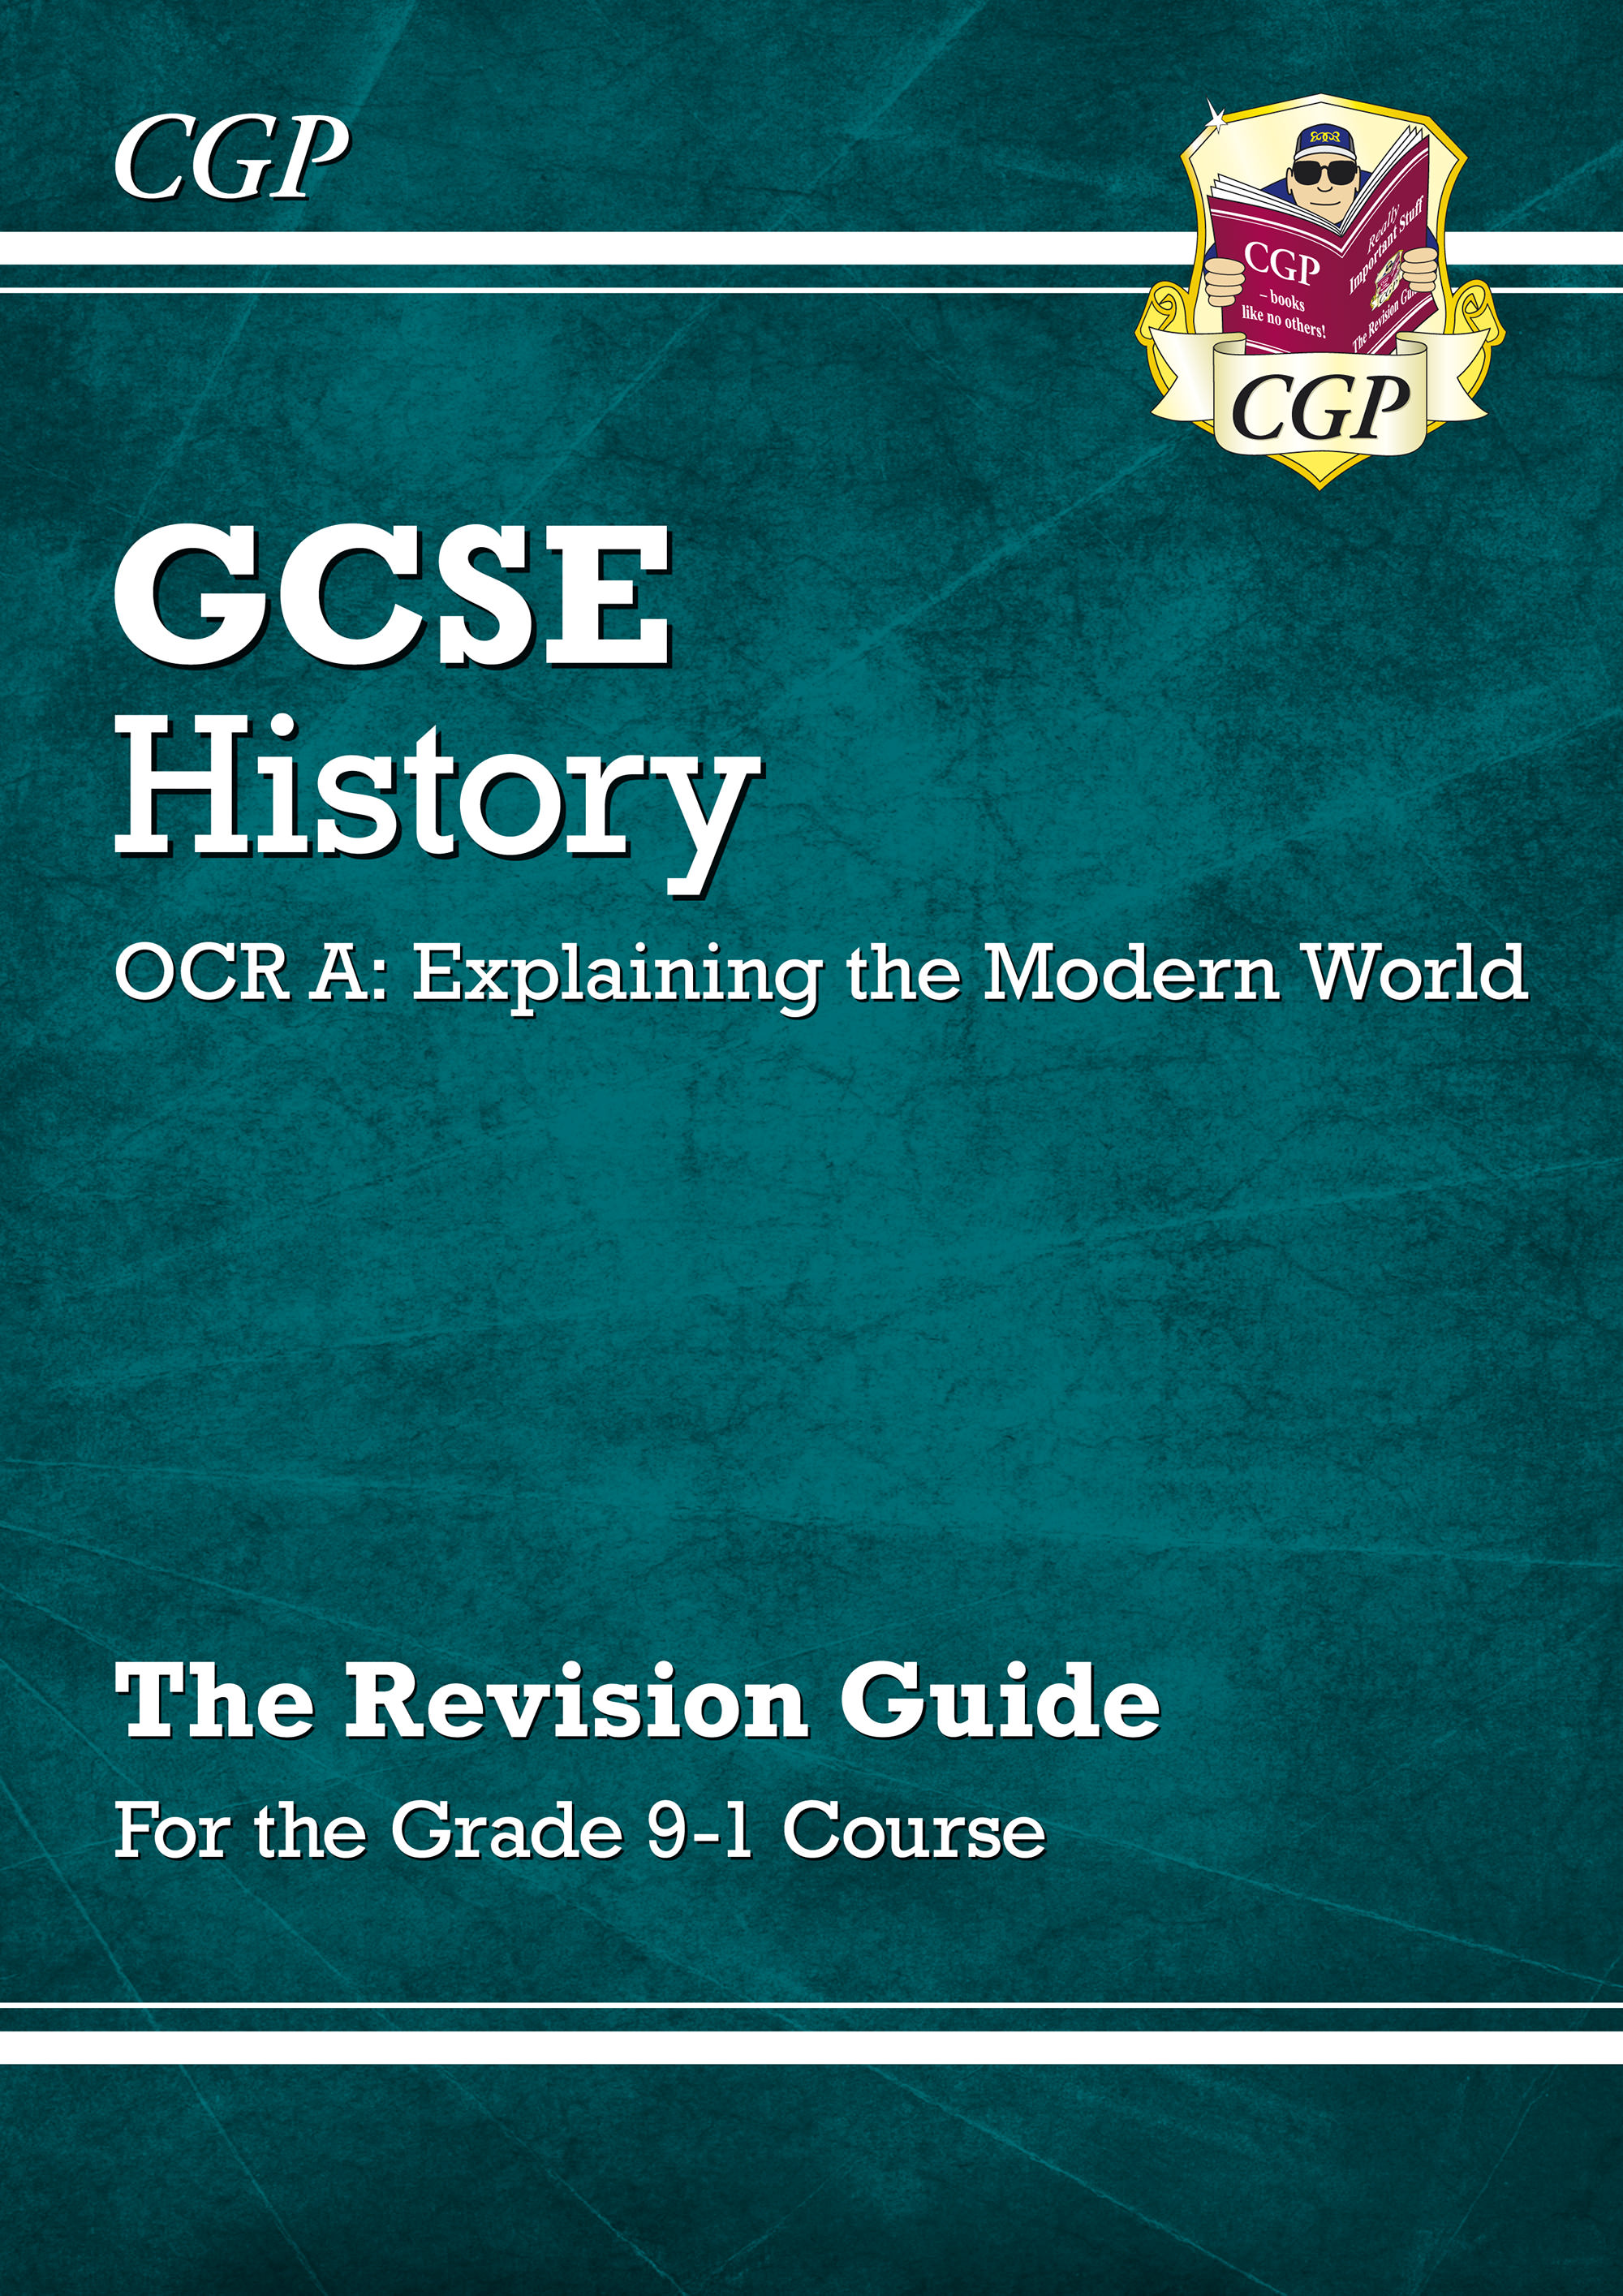 HWRR44 - GCSE History OCR A: Explaining the Modern World Revision Guide - for the Grade 9-1 Course